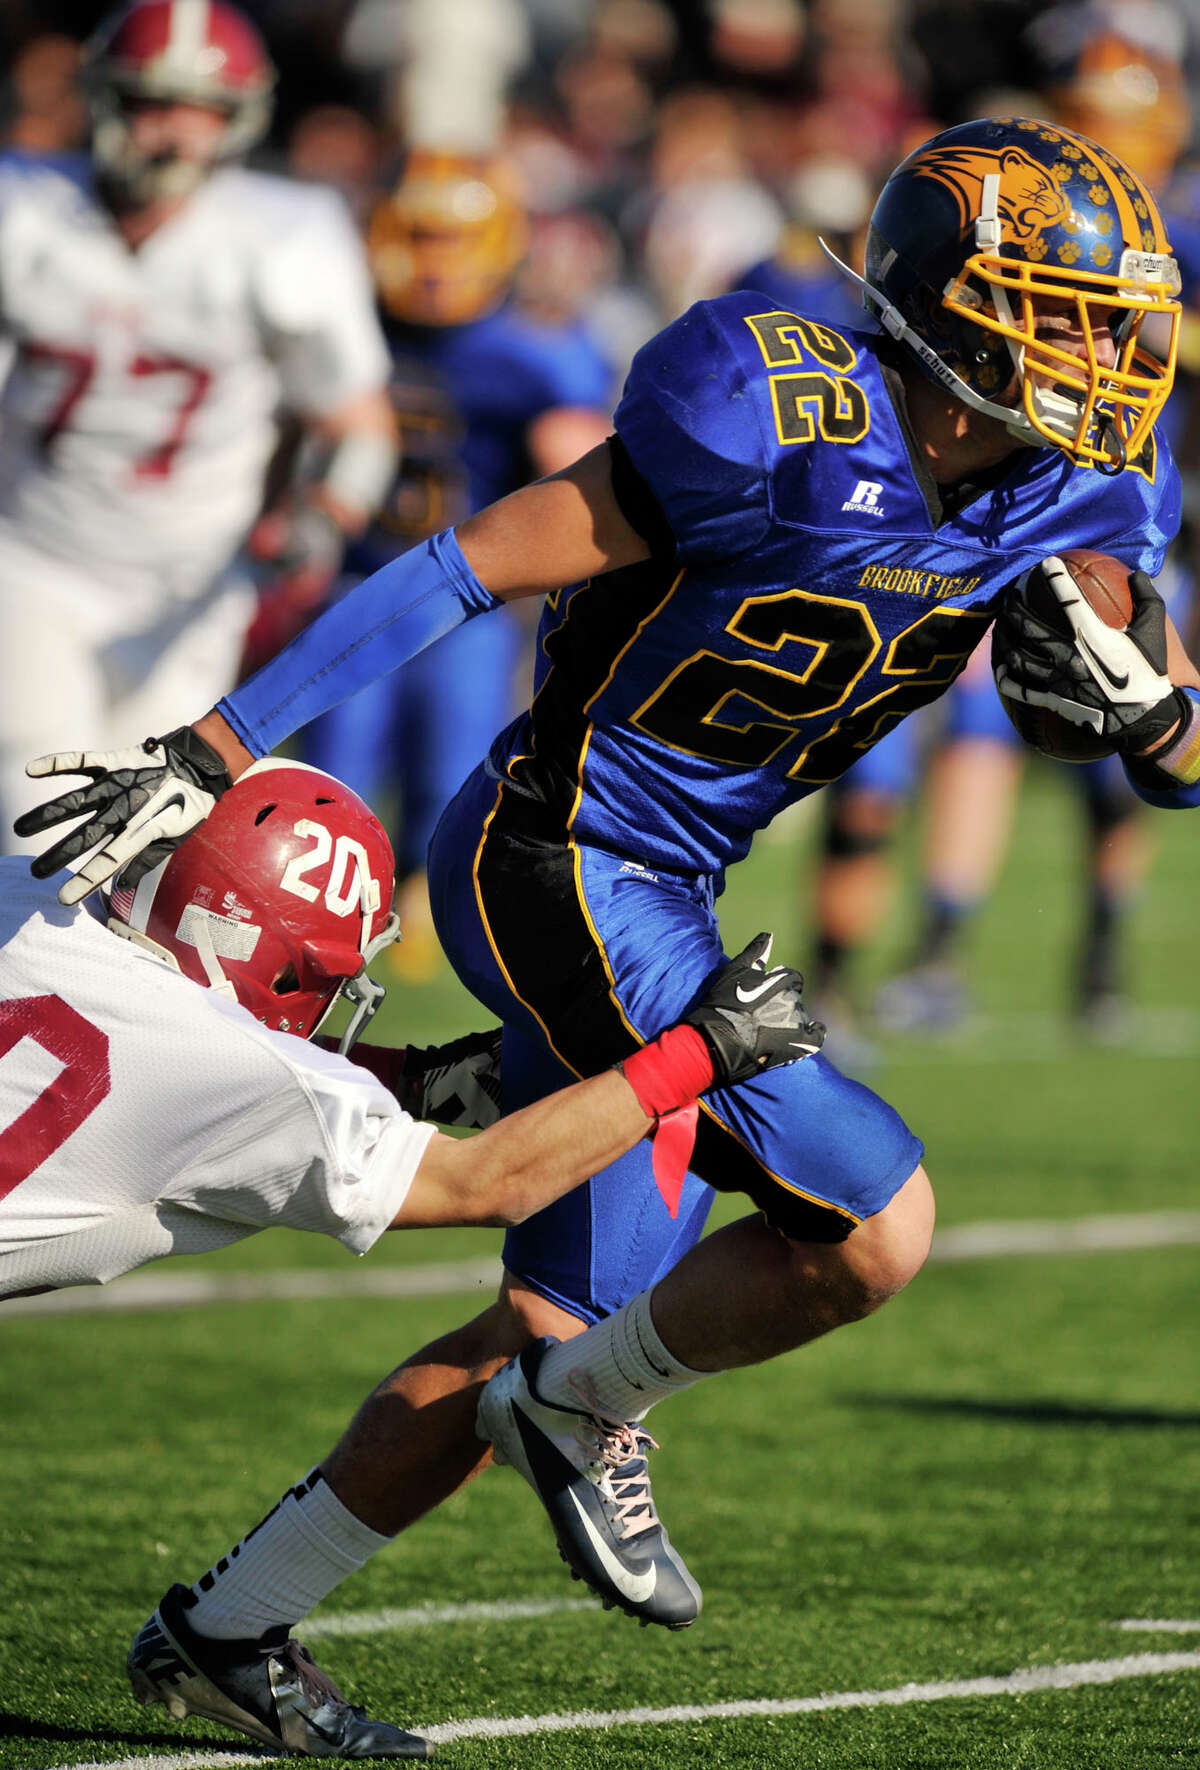 Brookfield's Liam Clancy evades the tackle of Bethel's James Giannone during their game at Brookfield High School on Thursday, Nov. 22, 2012.